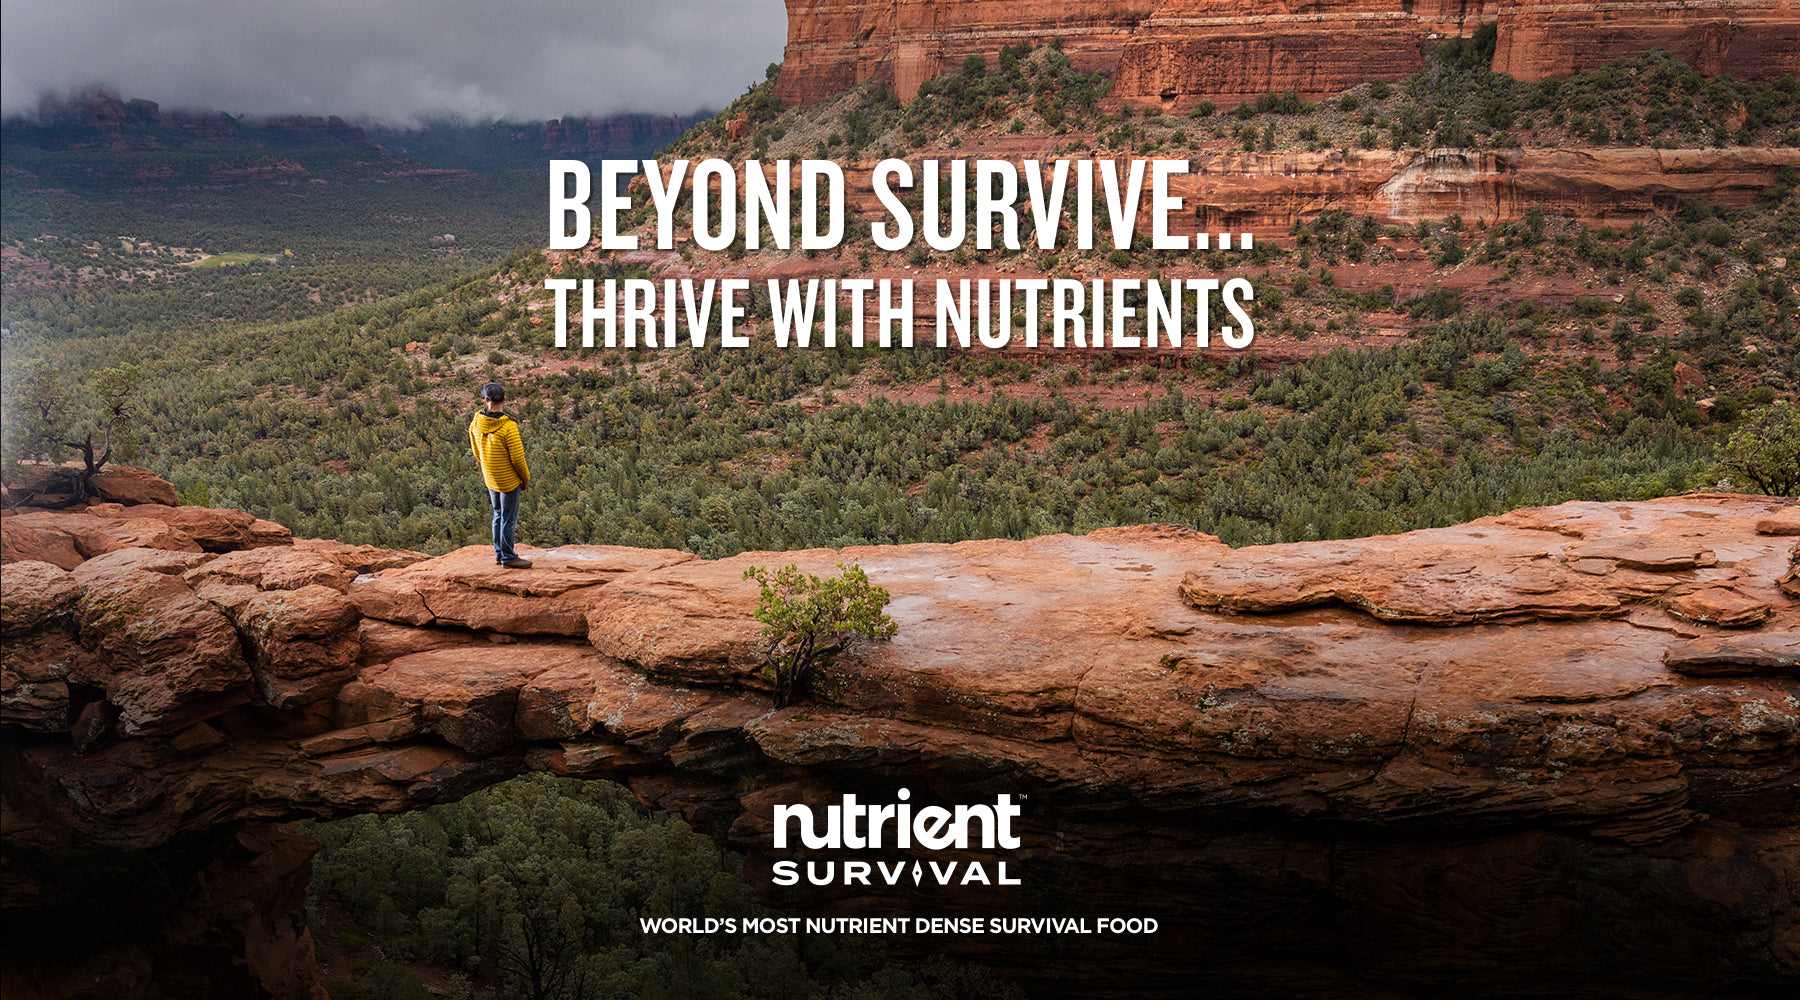 Picture of man hiking with Nutrient Survival food kit